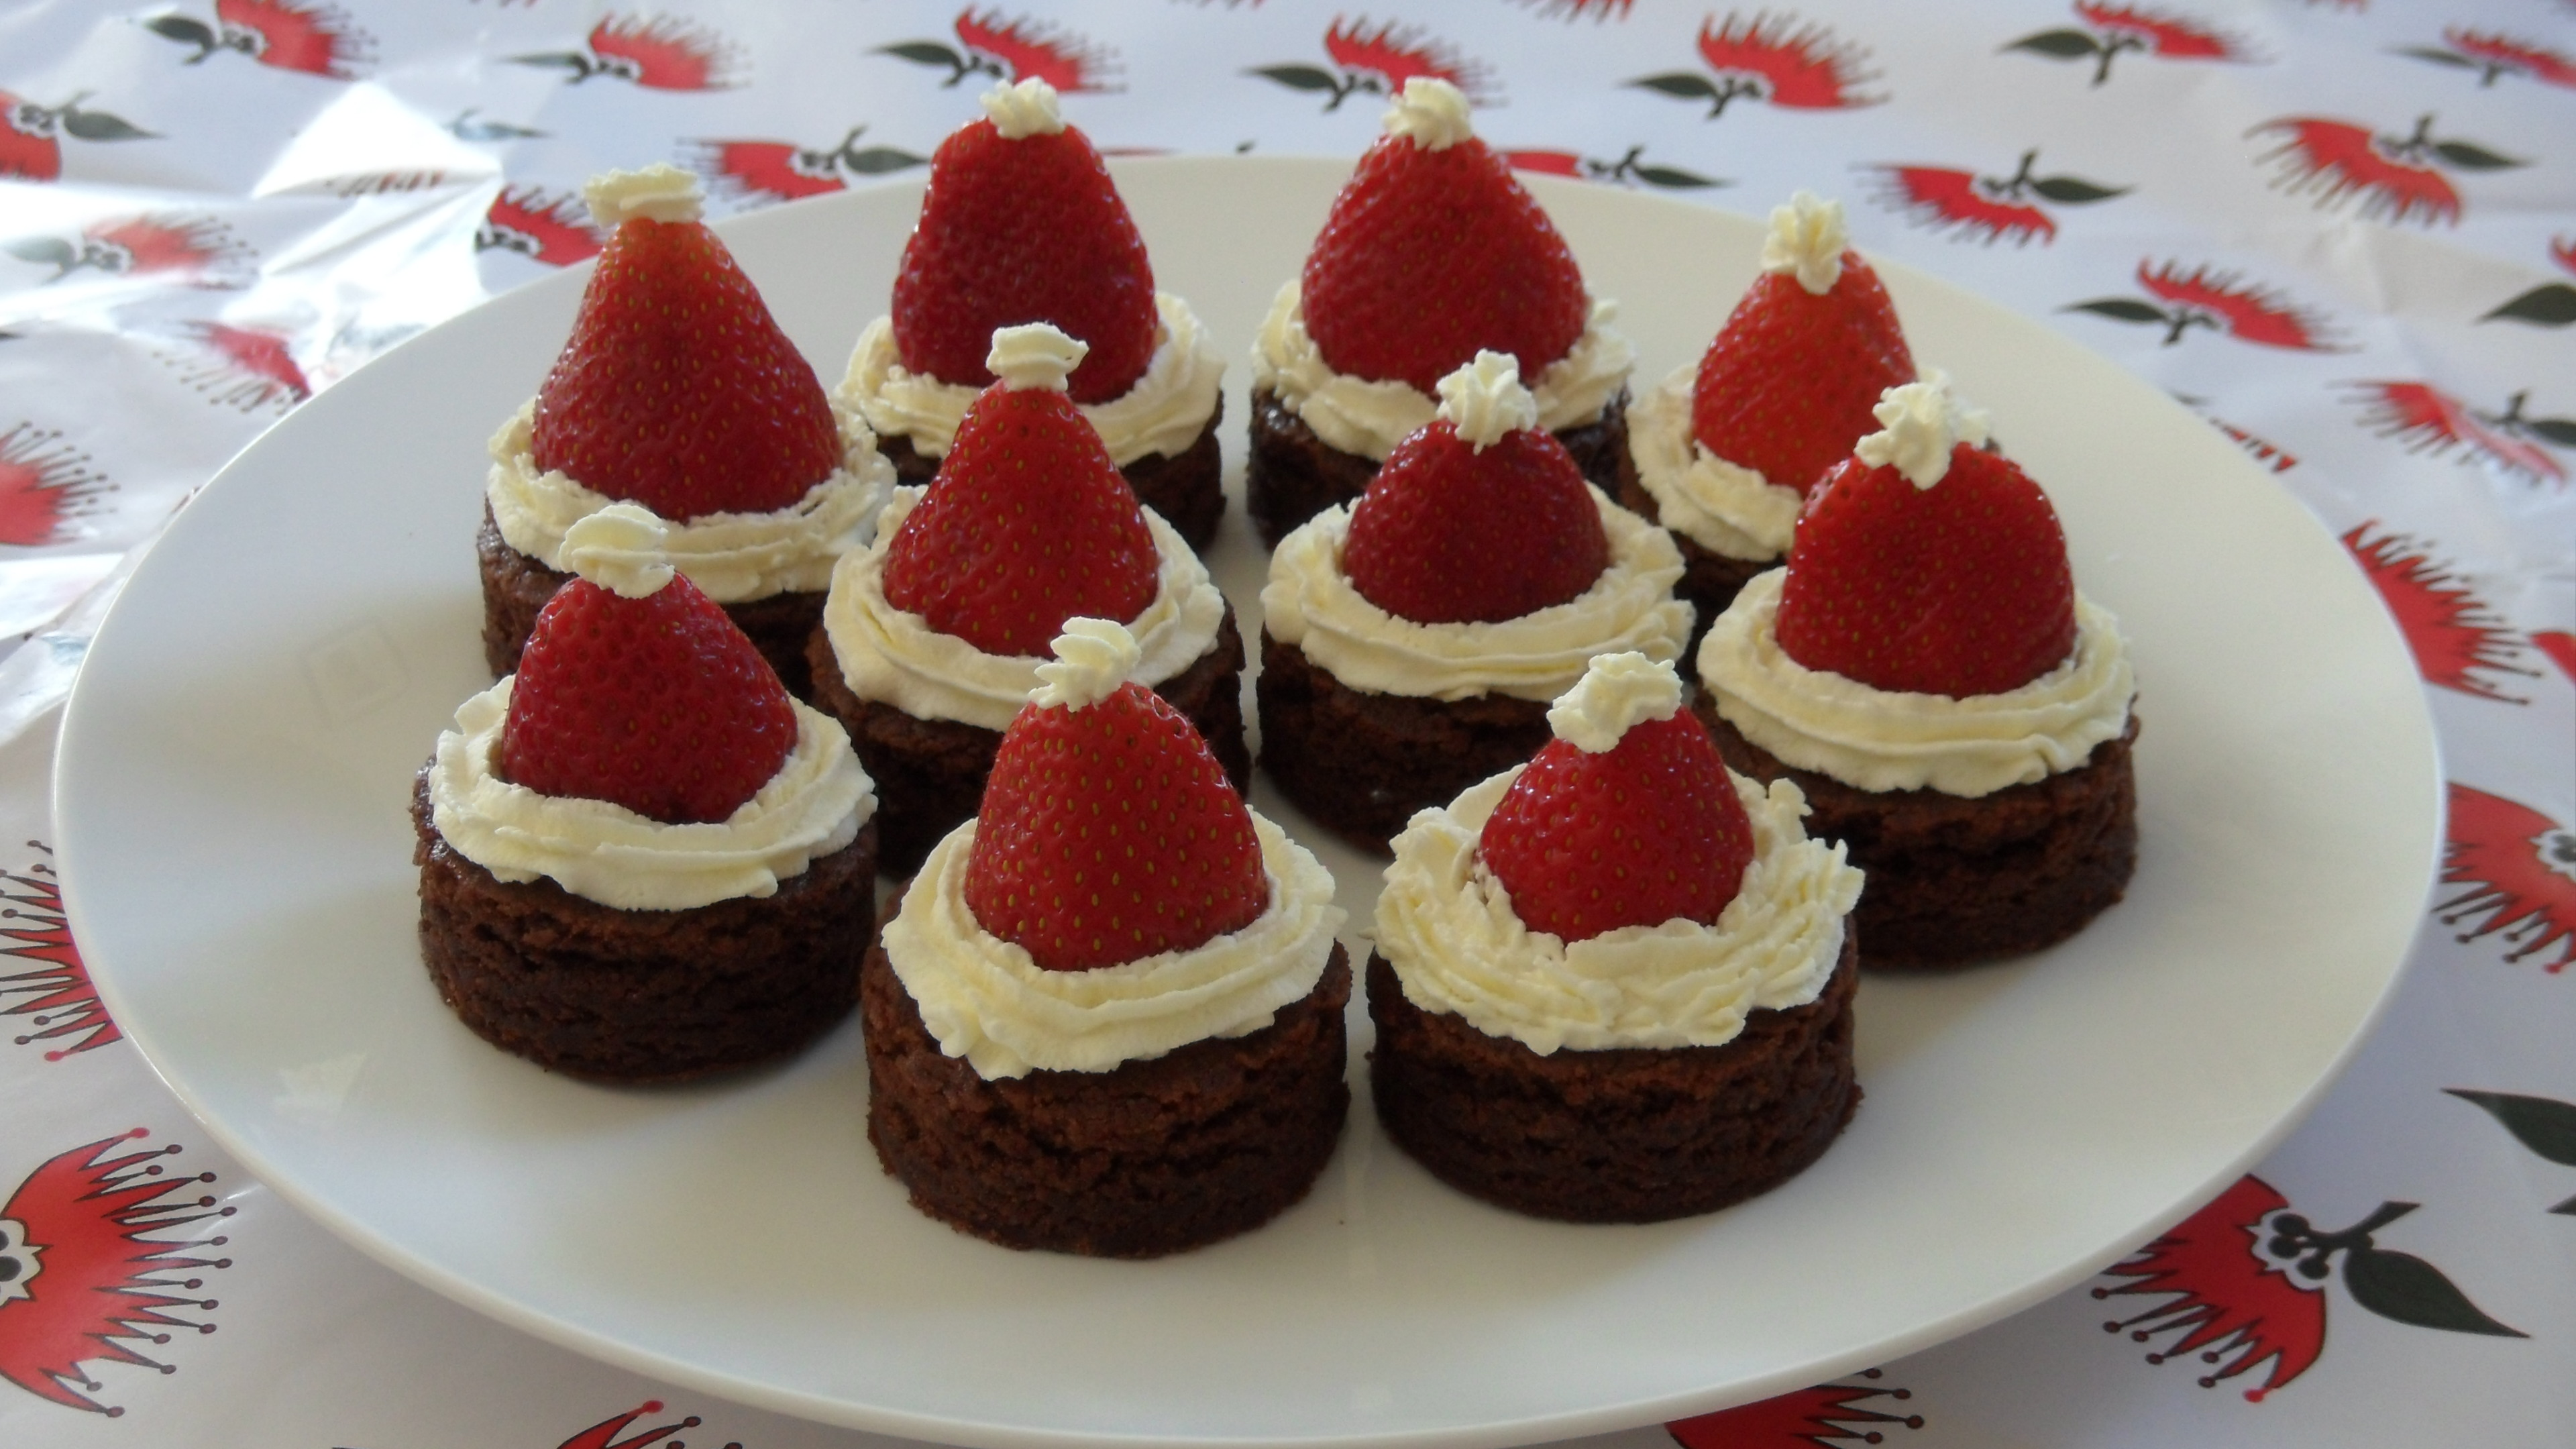 This recipe came from the New Zealand Woman's Day issue of 9 December, 2013. I was going to make the Strawberry and Cream Cheese Santas again for Christmas ...